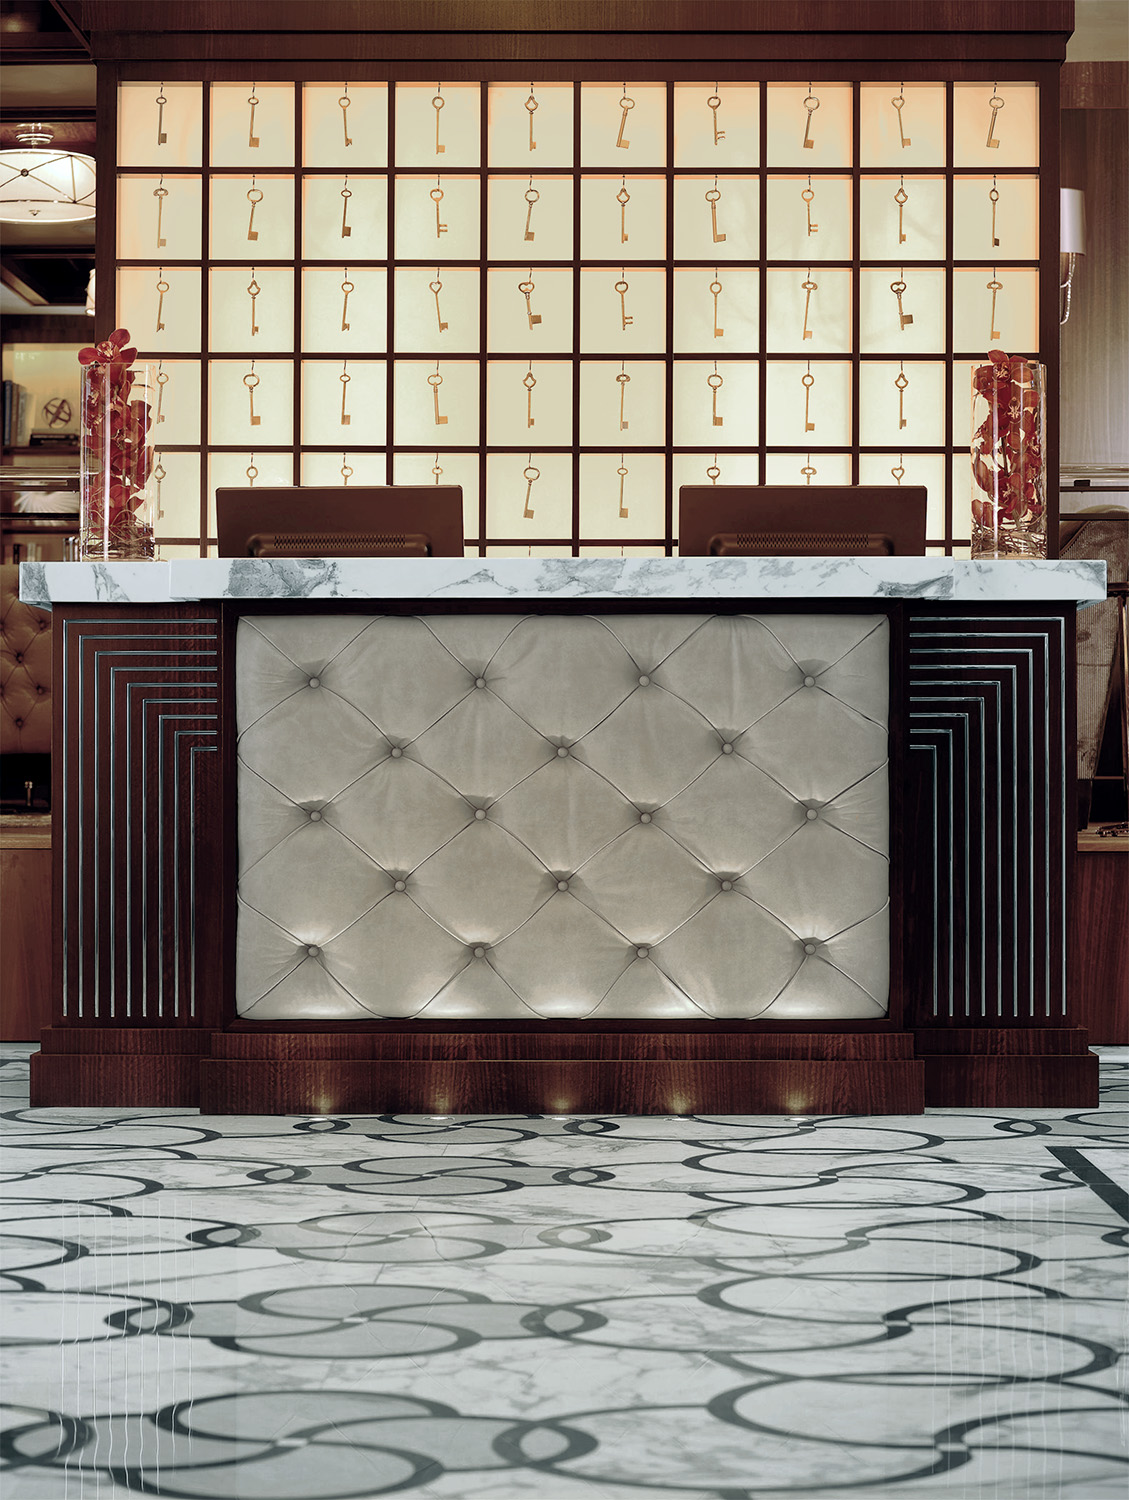 Art deco style Lobby Reception Desk at WestHouse New York